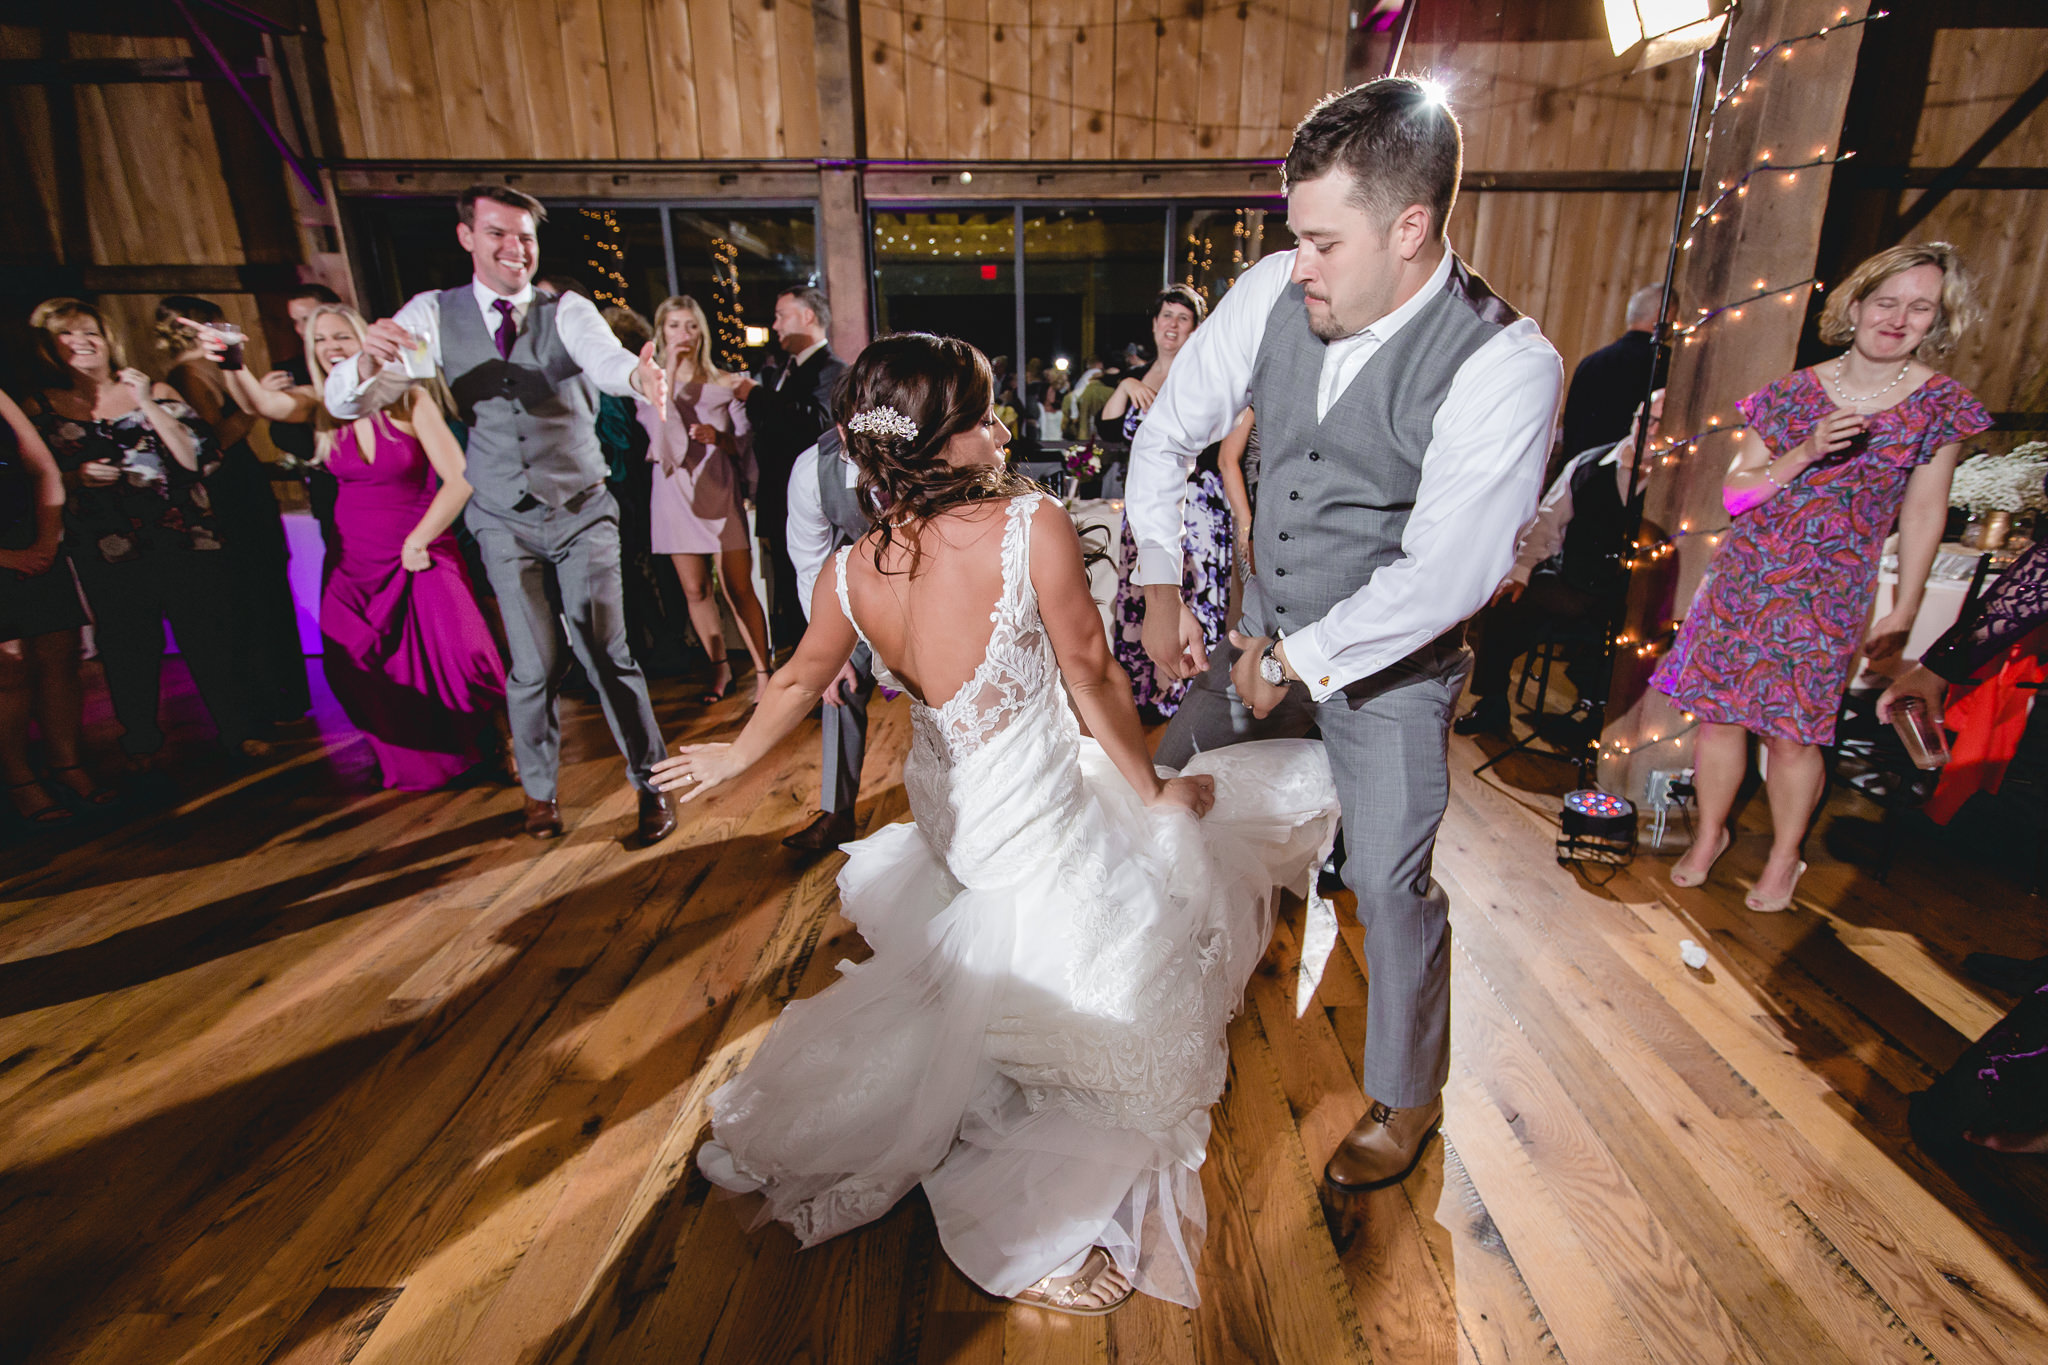 Bride and groom show off their dance moves at their White Barn wedding